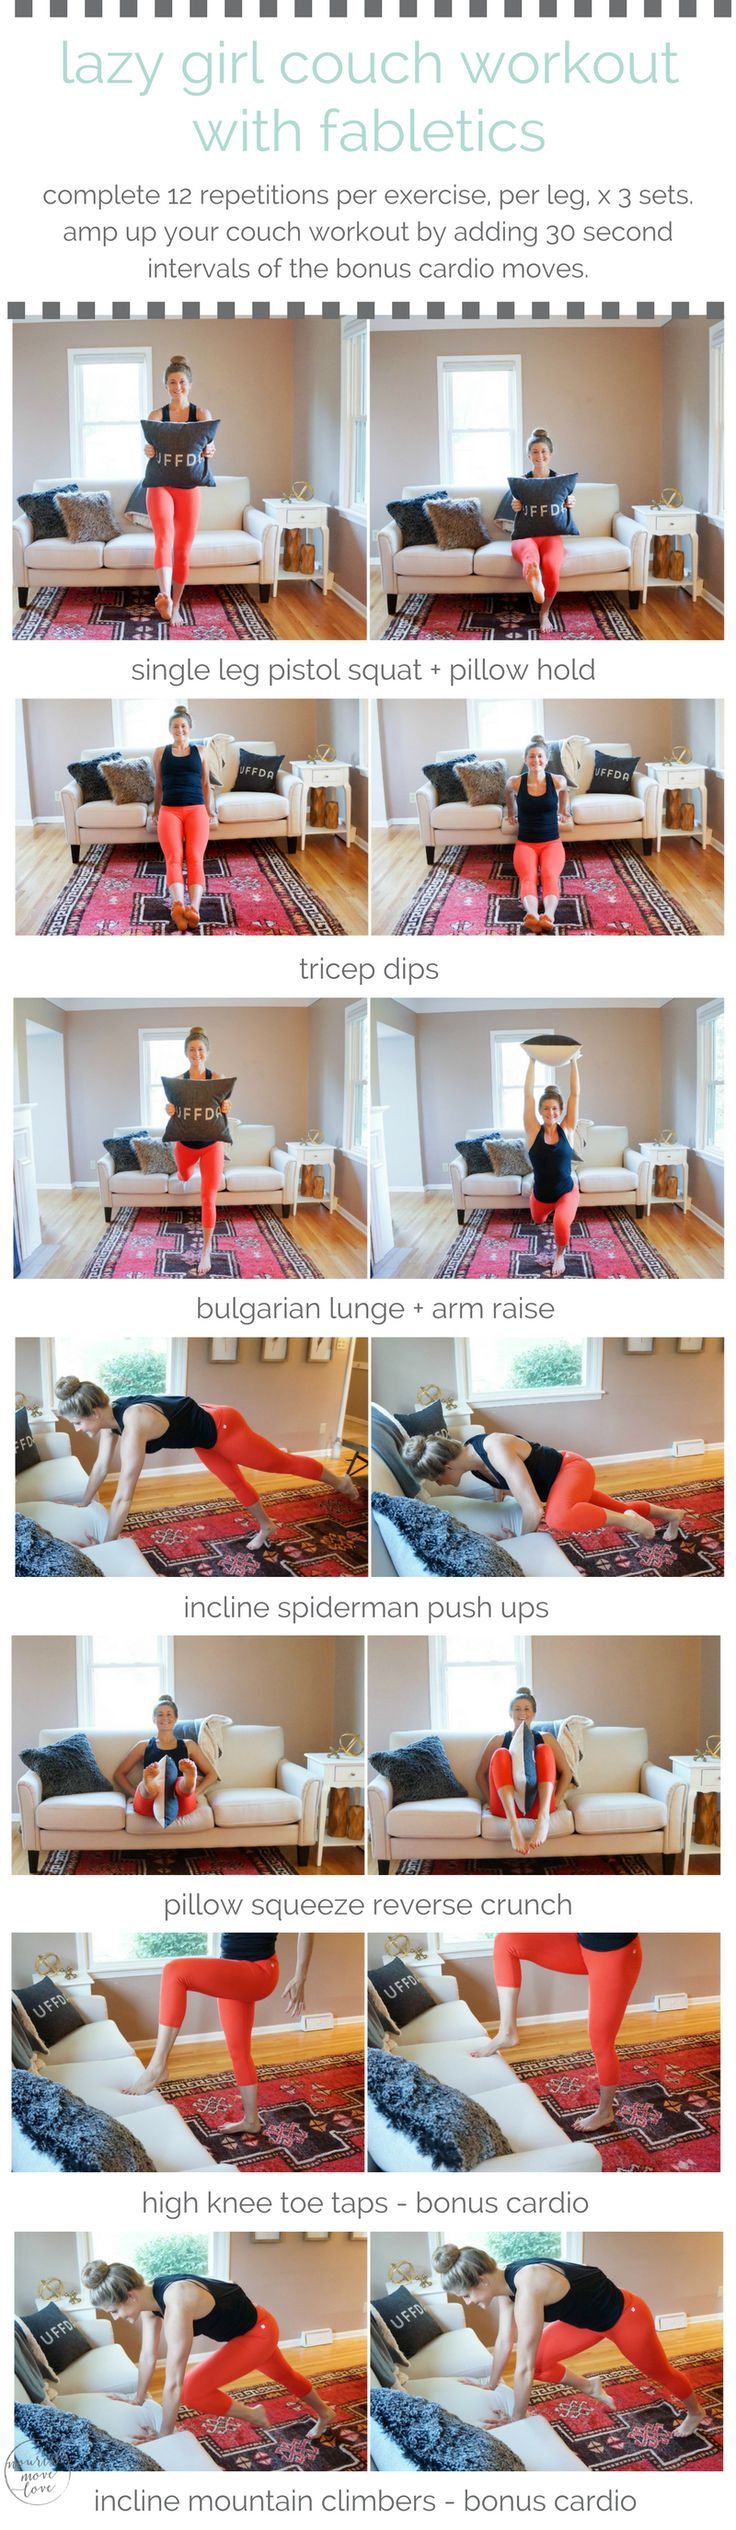 lazy-girl-couch-workout-with-fabletics-long_pin